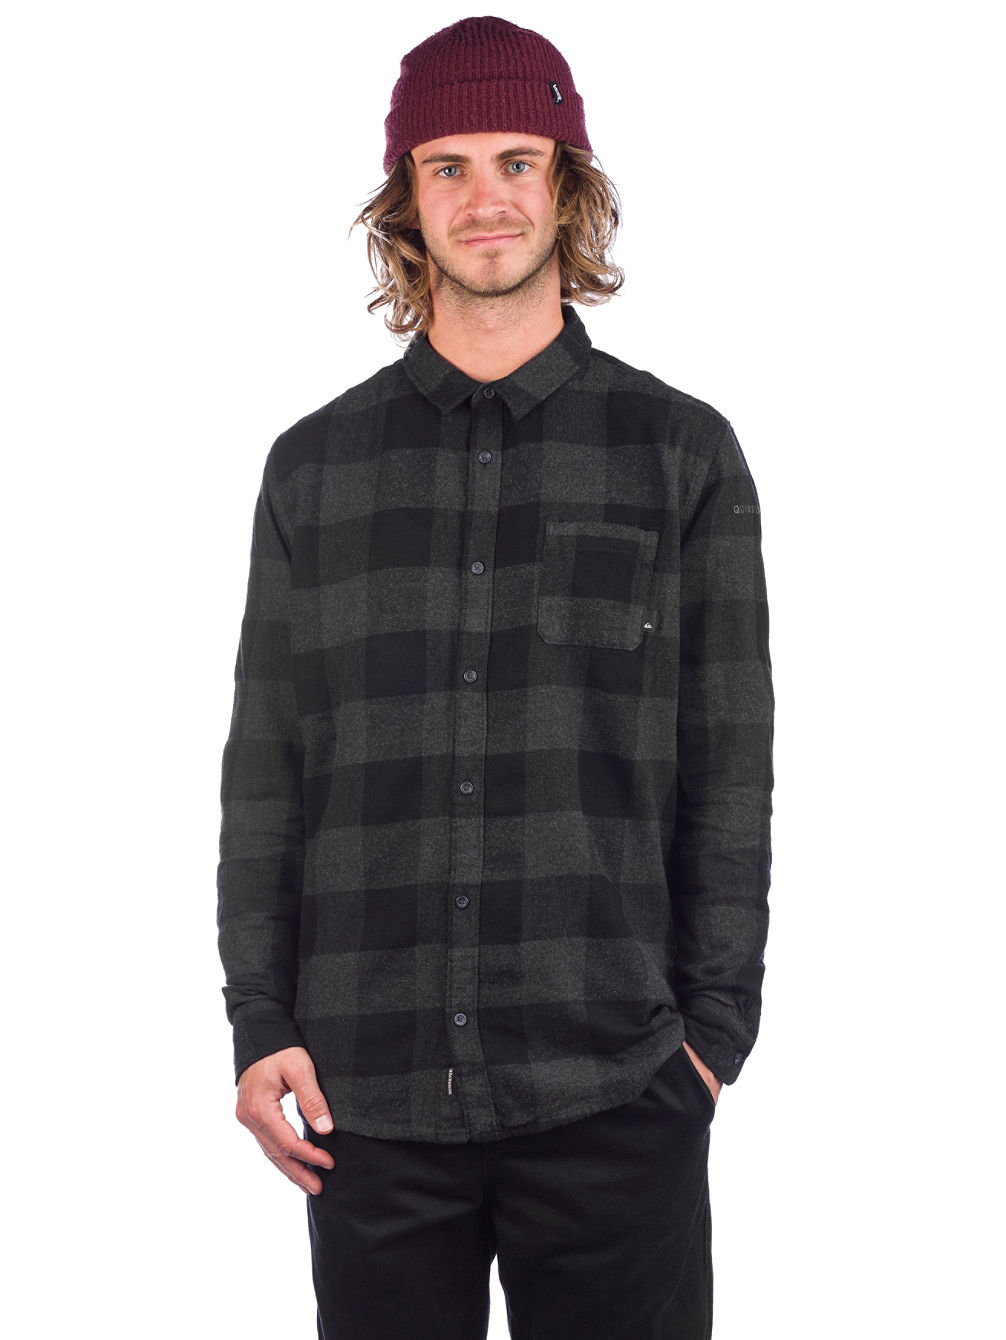 Motherfly Flannel Shirt